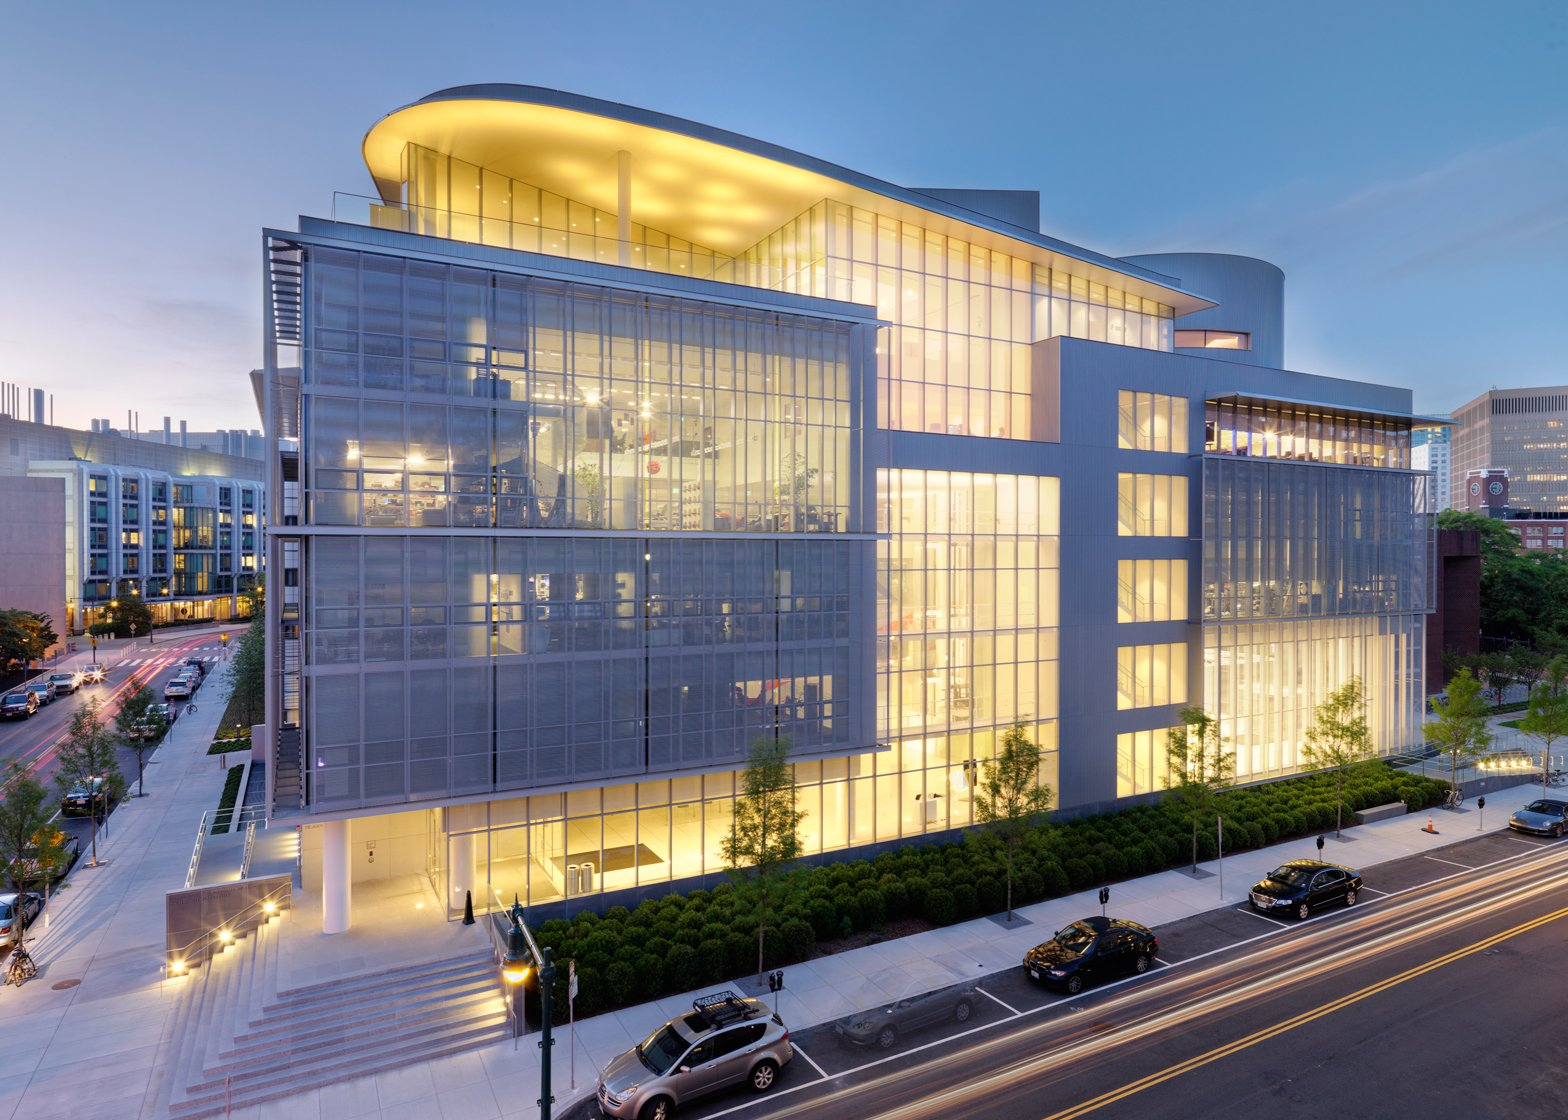 MIT's Media Lab building designed by architect Fumihiko Maki is used by the institute's architecture school, which beat 1,668 institutions to be named the world's best